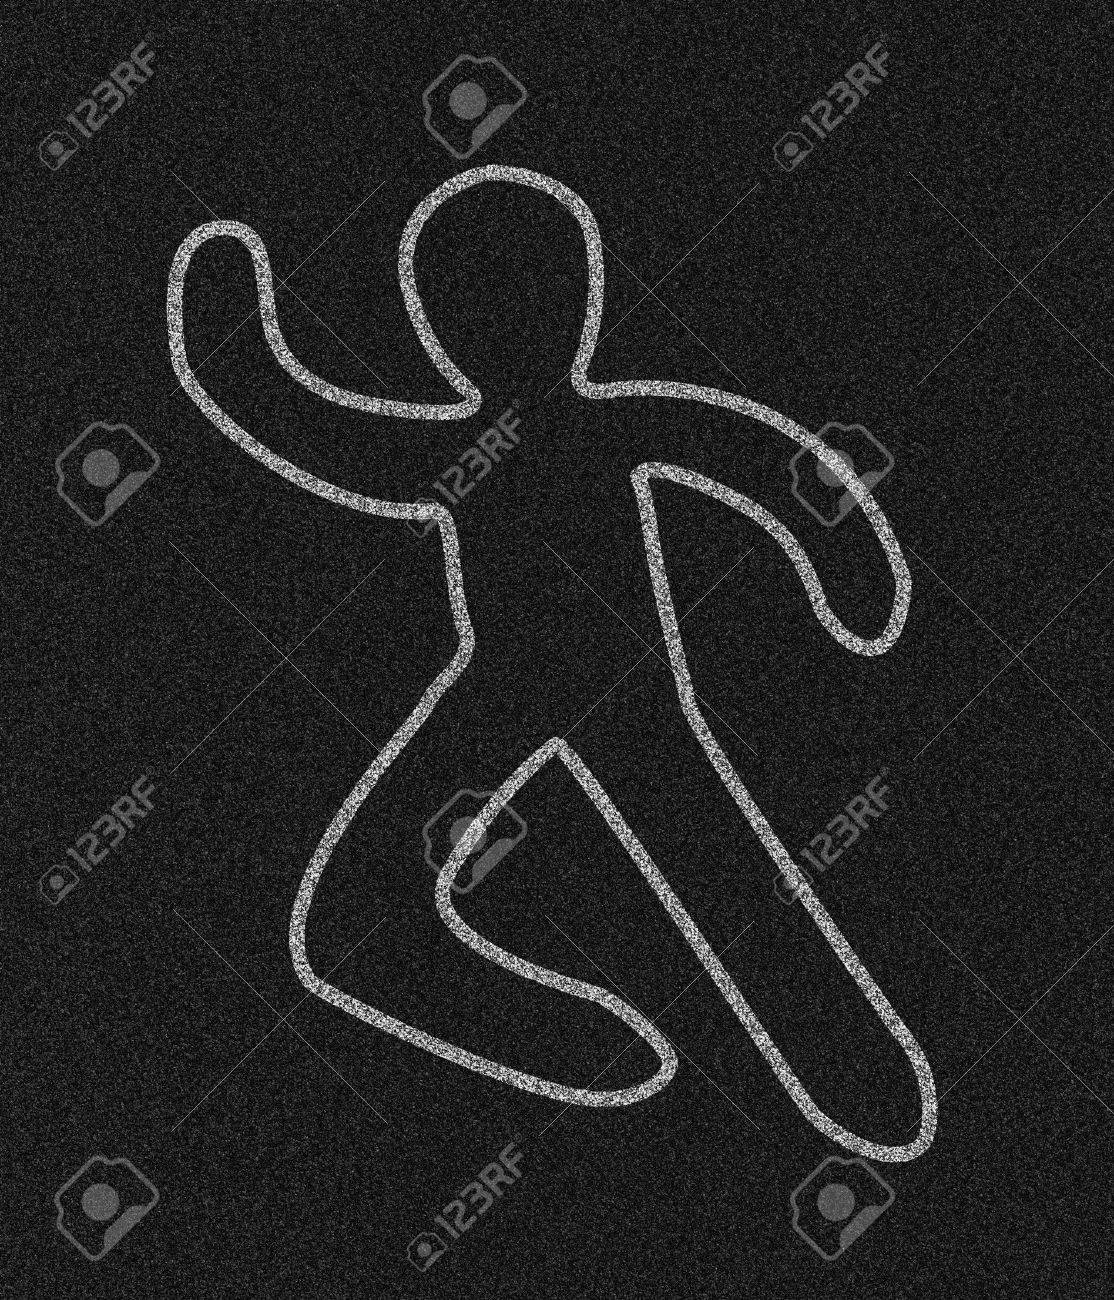 Chalk outline of a person on black asphalt textured pavement. Stock Photo - 2175250